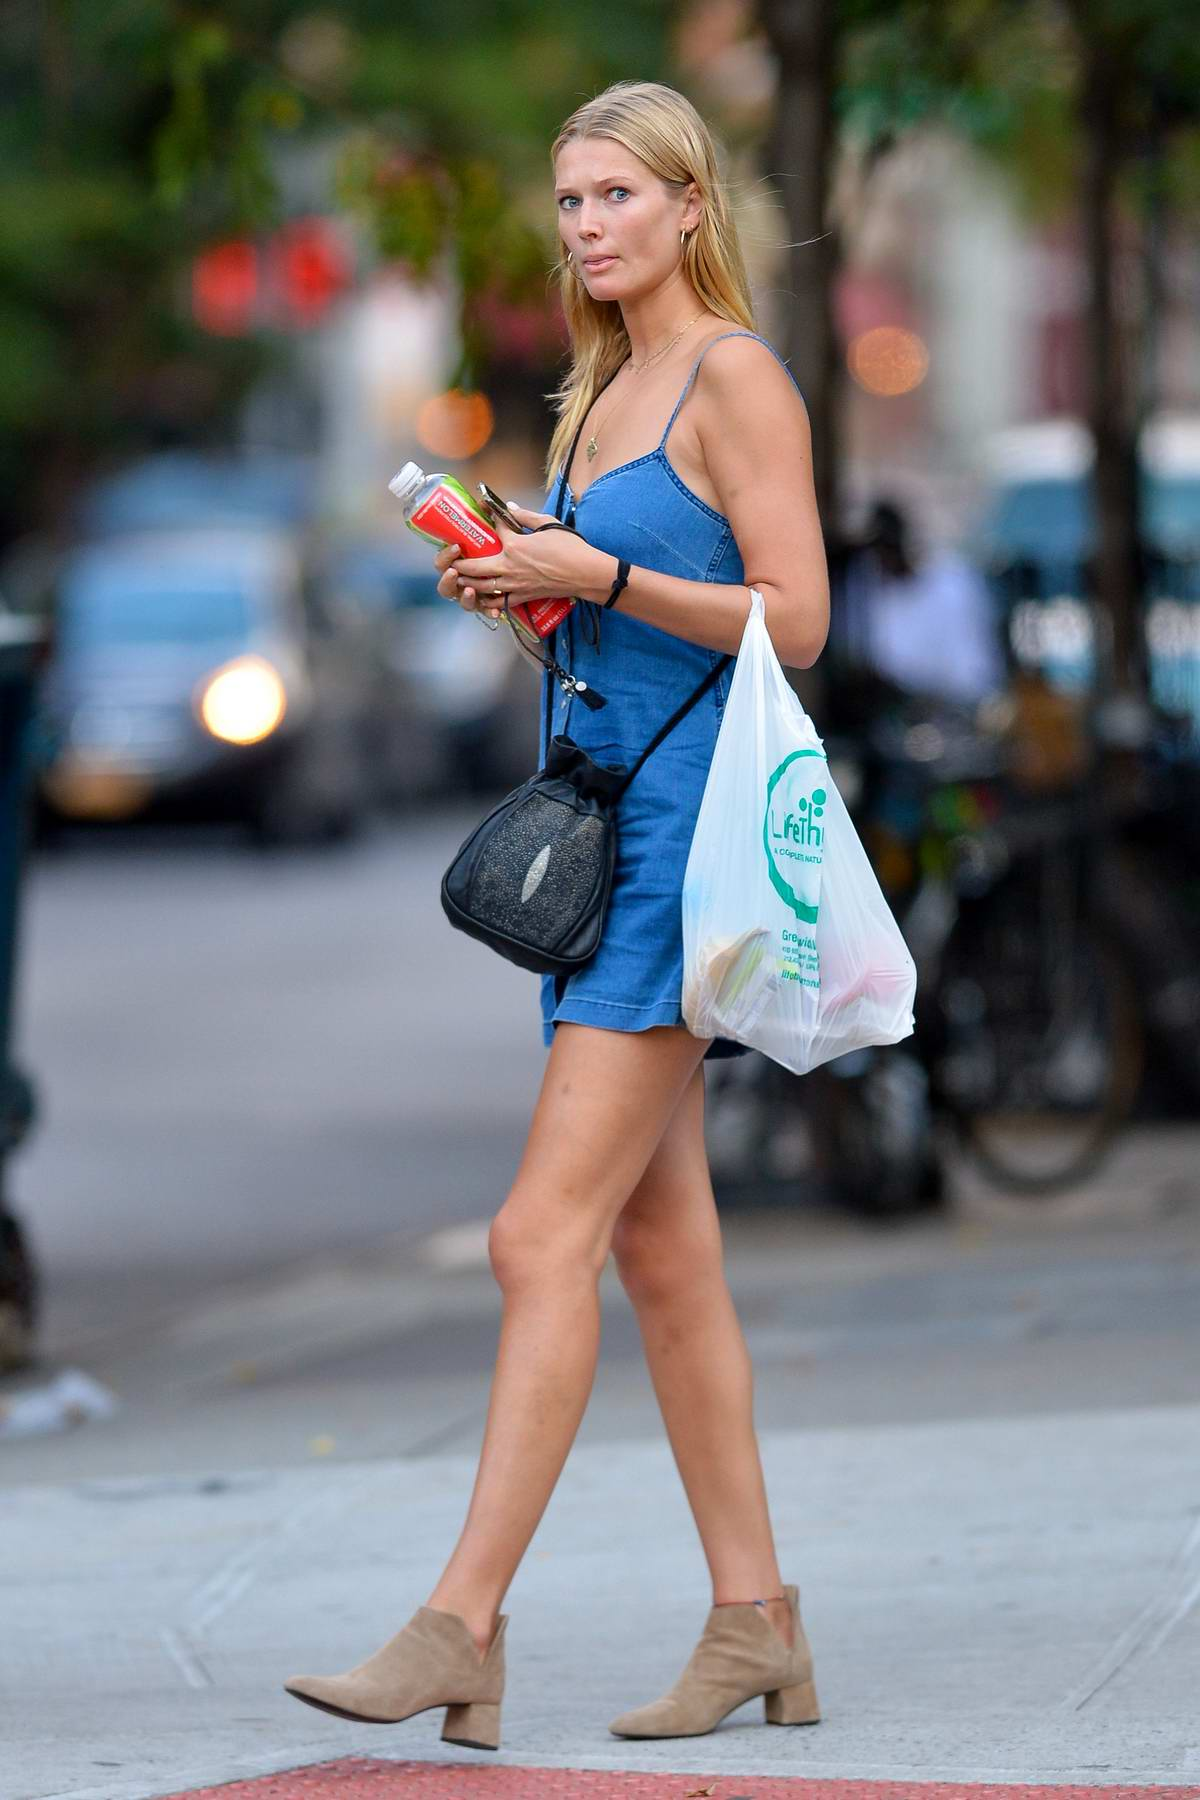 Toni Garrn wears a blue denim minidress while out on a stroll in New York City